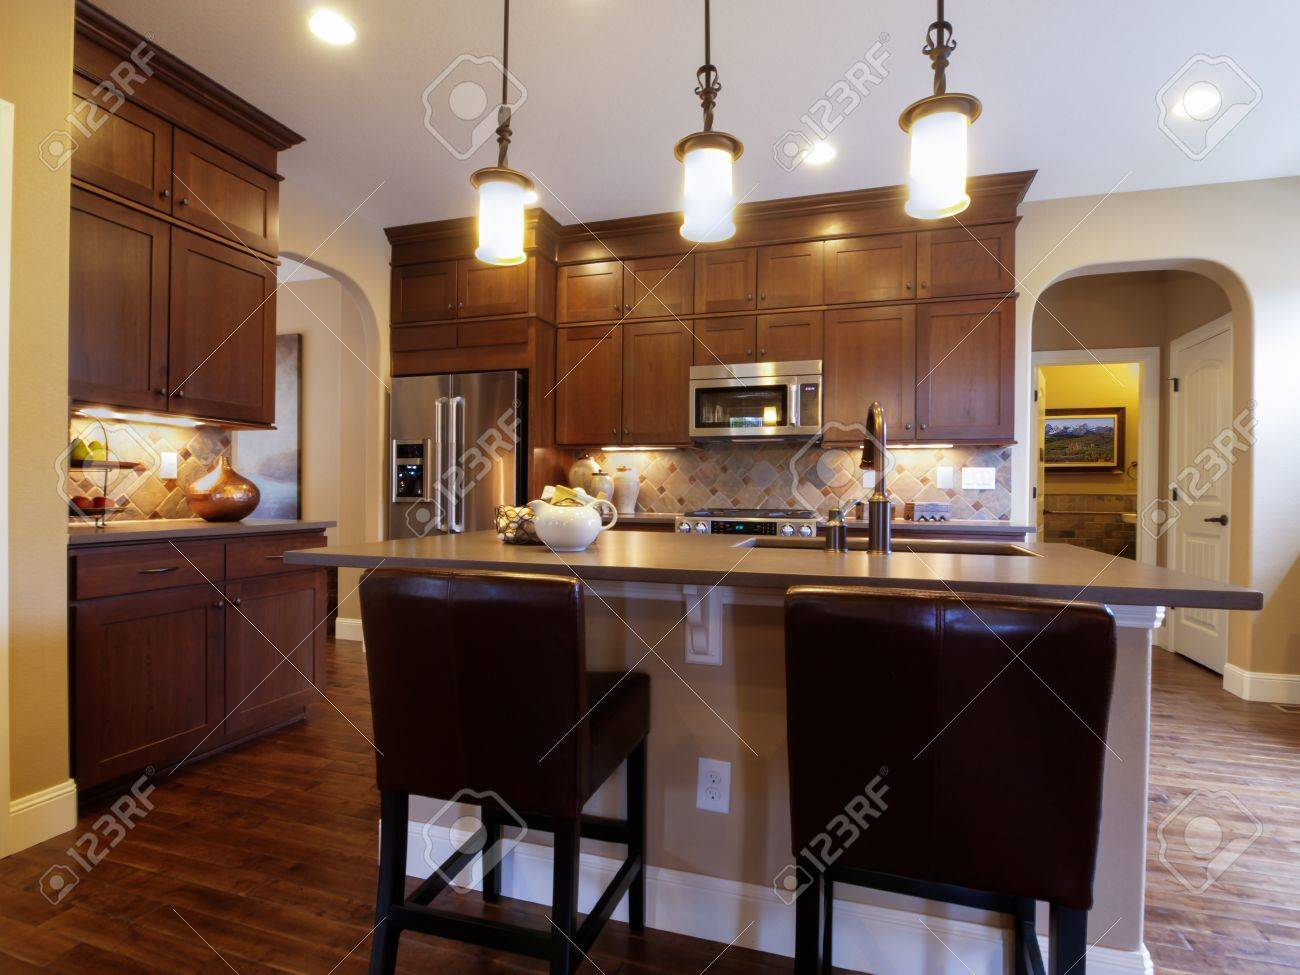 Kitchens With Wood Cabinets Modern Kitchen With Wood Cabinets And Stainless Appliances Stock